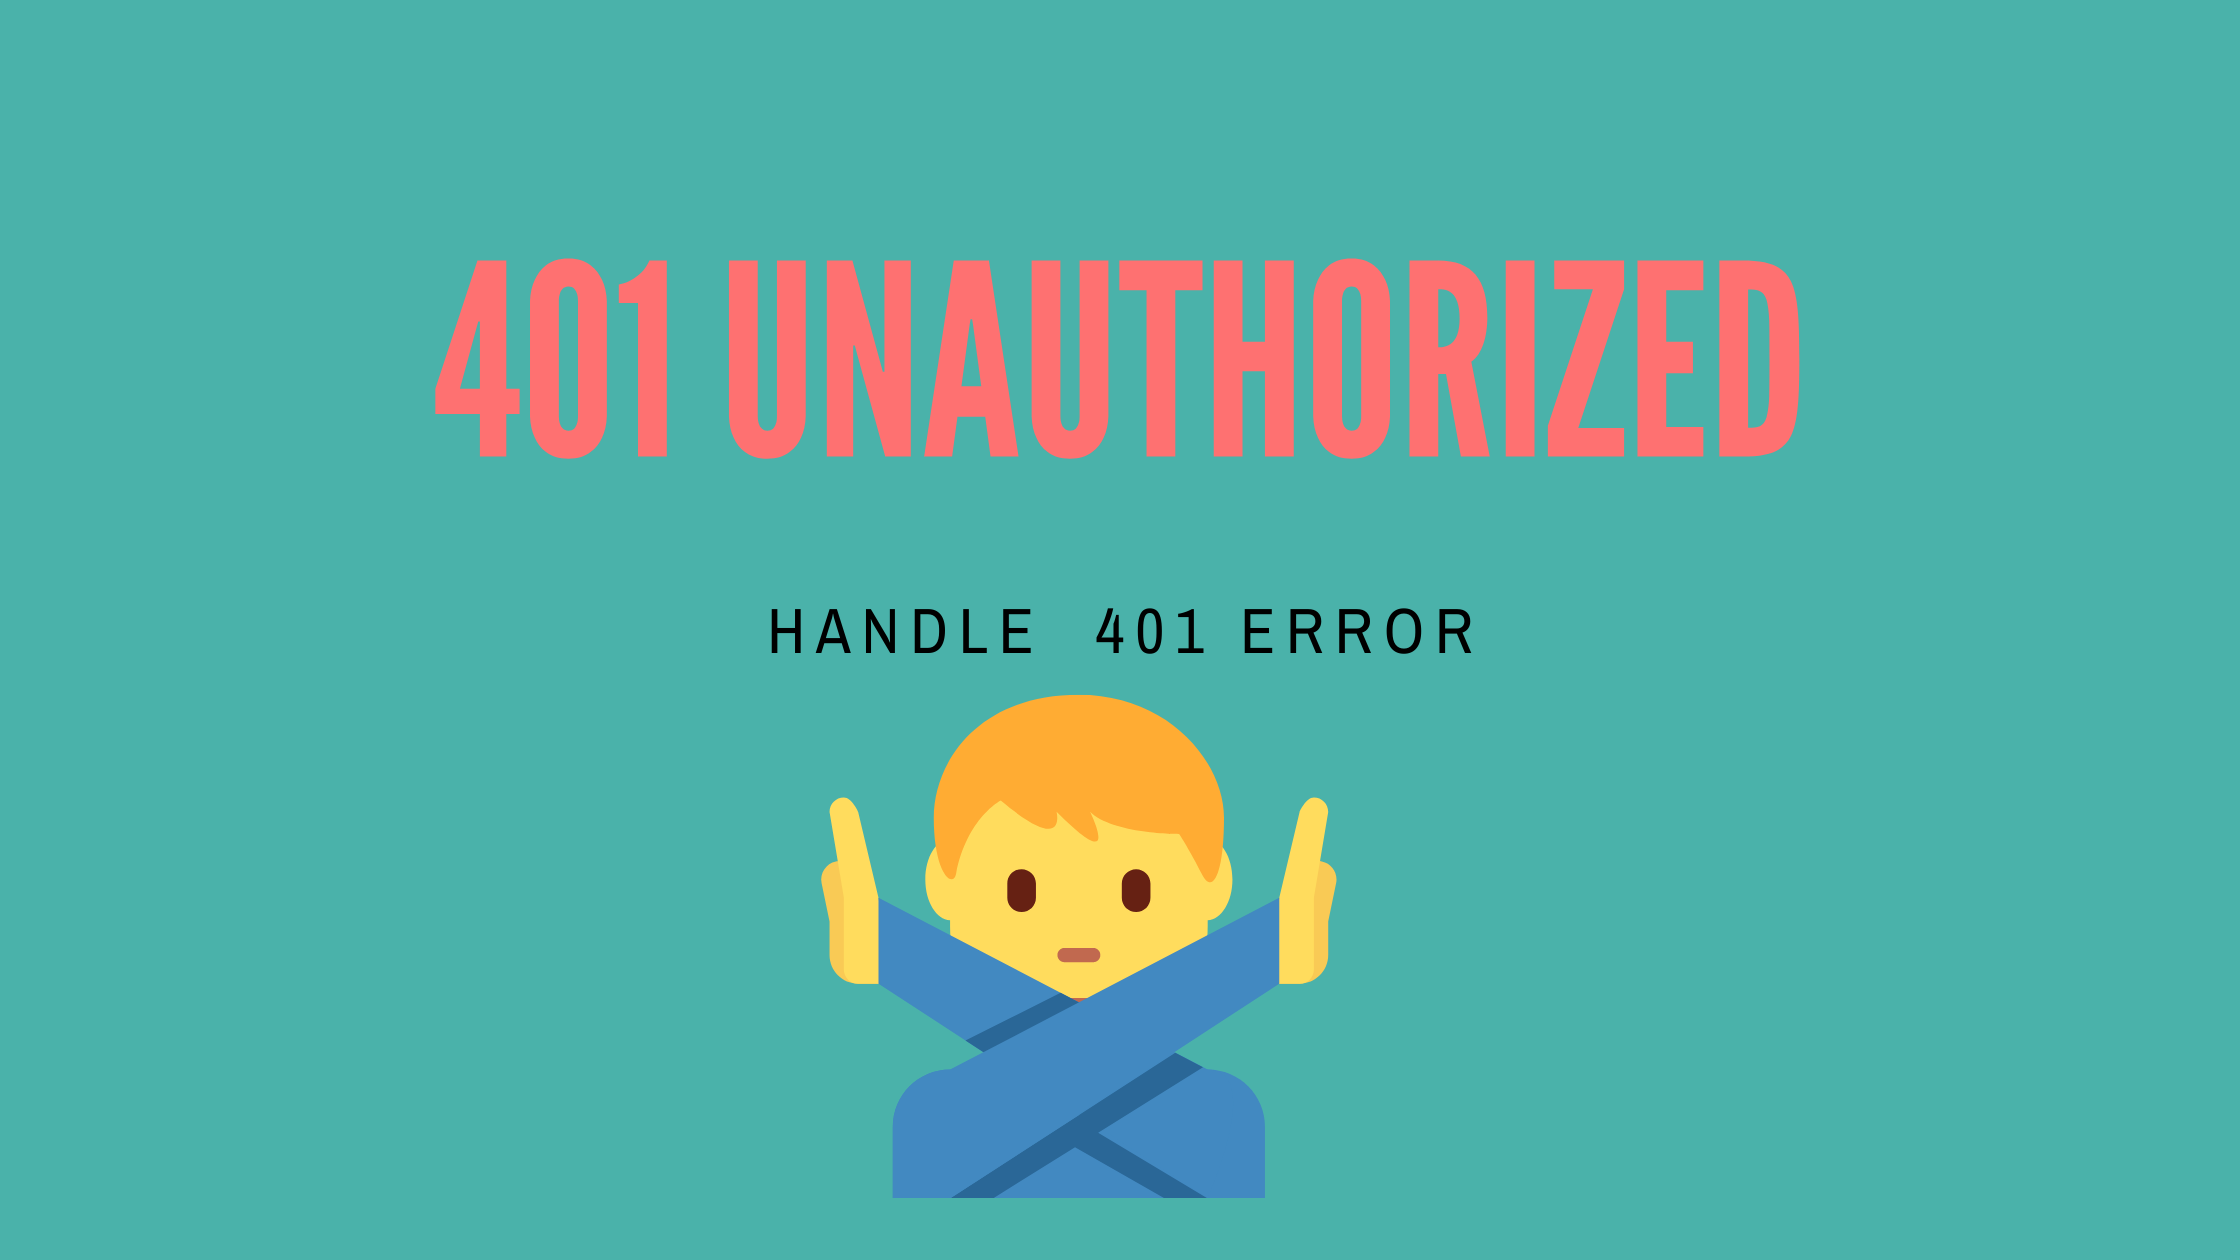 401 Unauthorized error